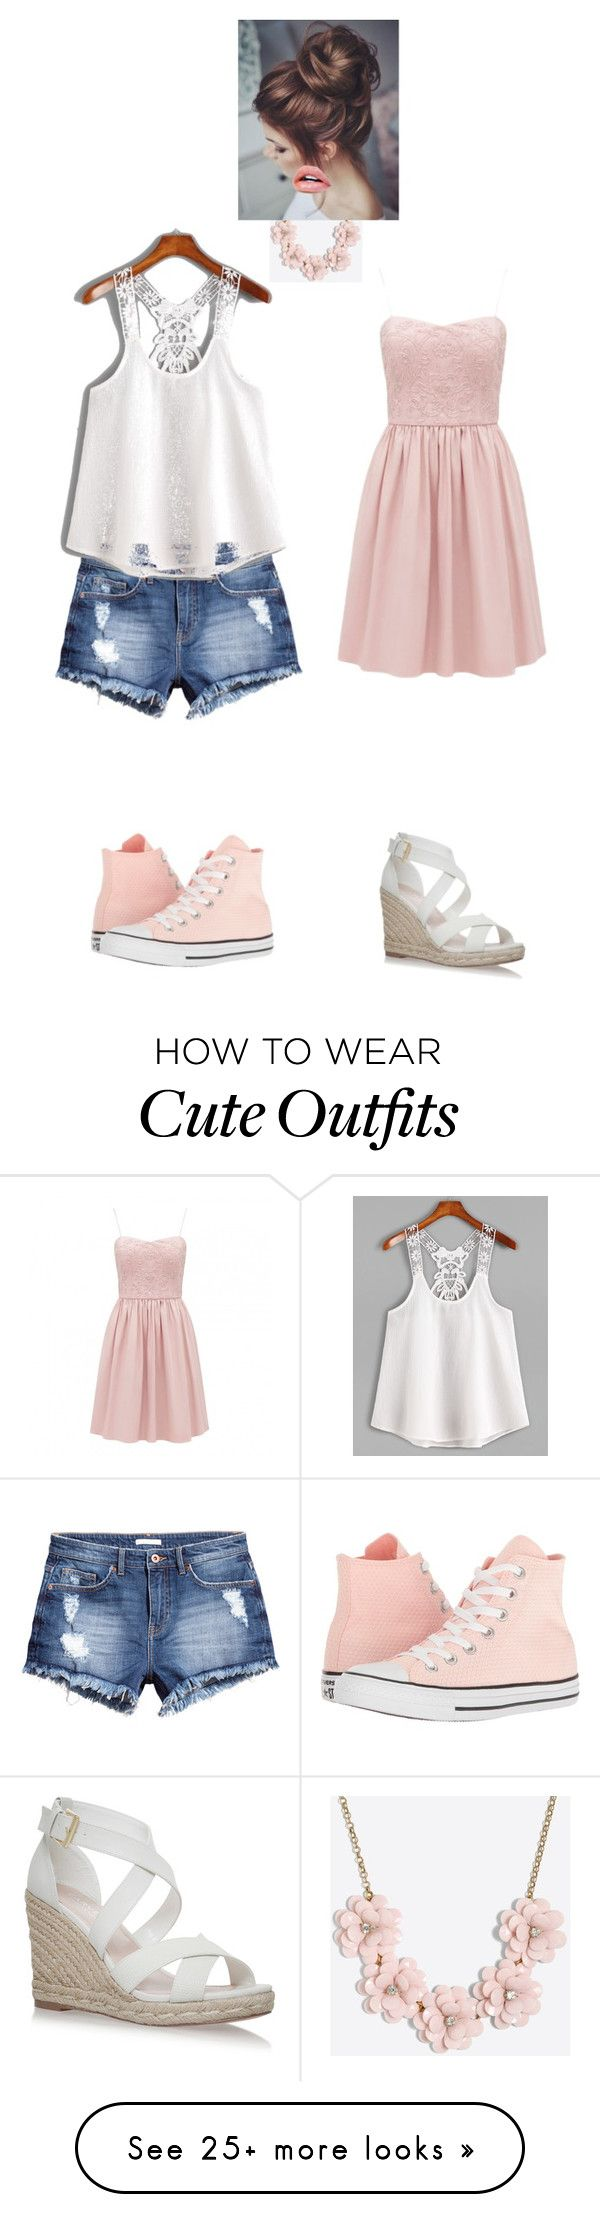 """Casual or Cute Peach Outfits"" by alissanc2002 on Polyvore featuring J.Crew, Converse, H&M, cute, Pink, pretty, peach and casualoutfit"